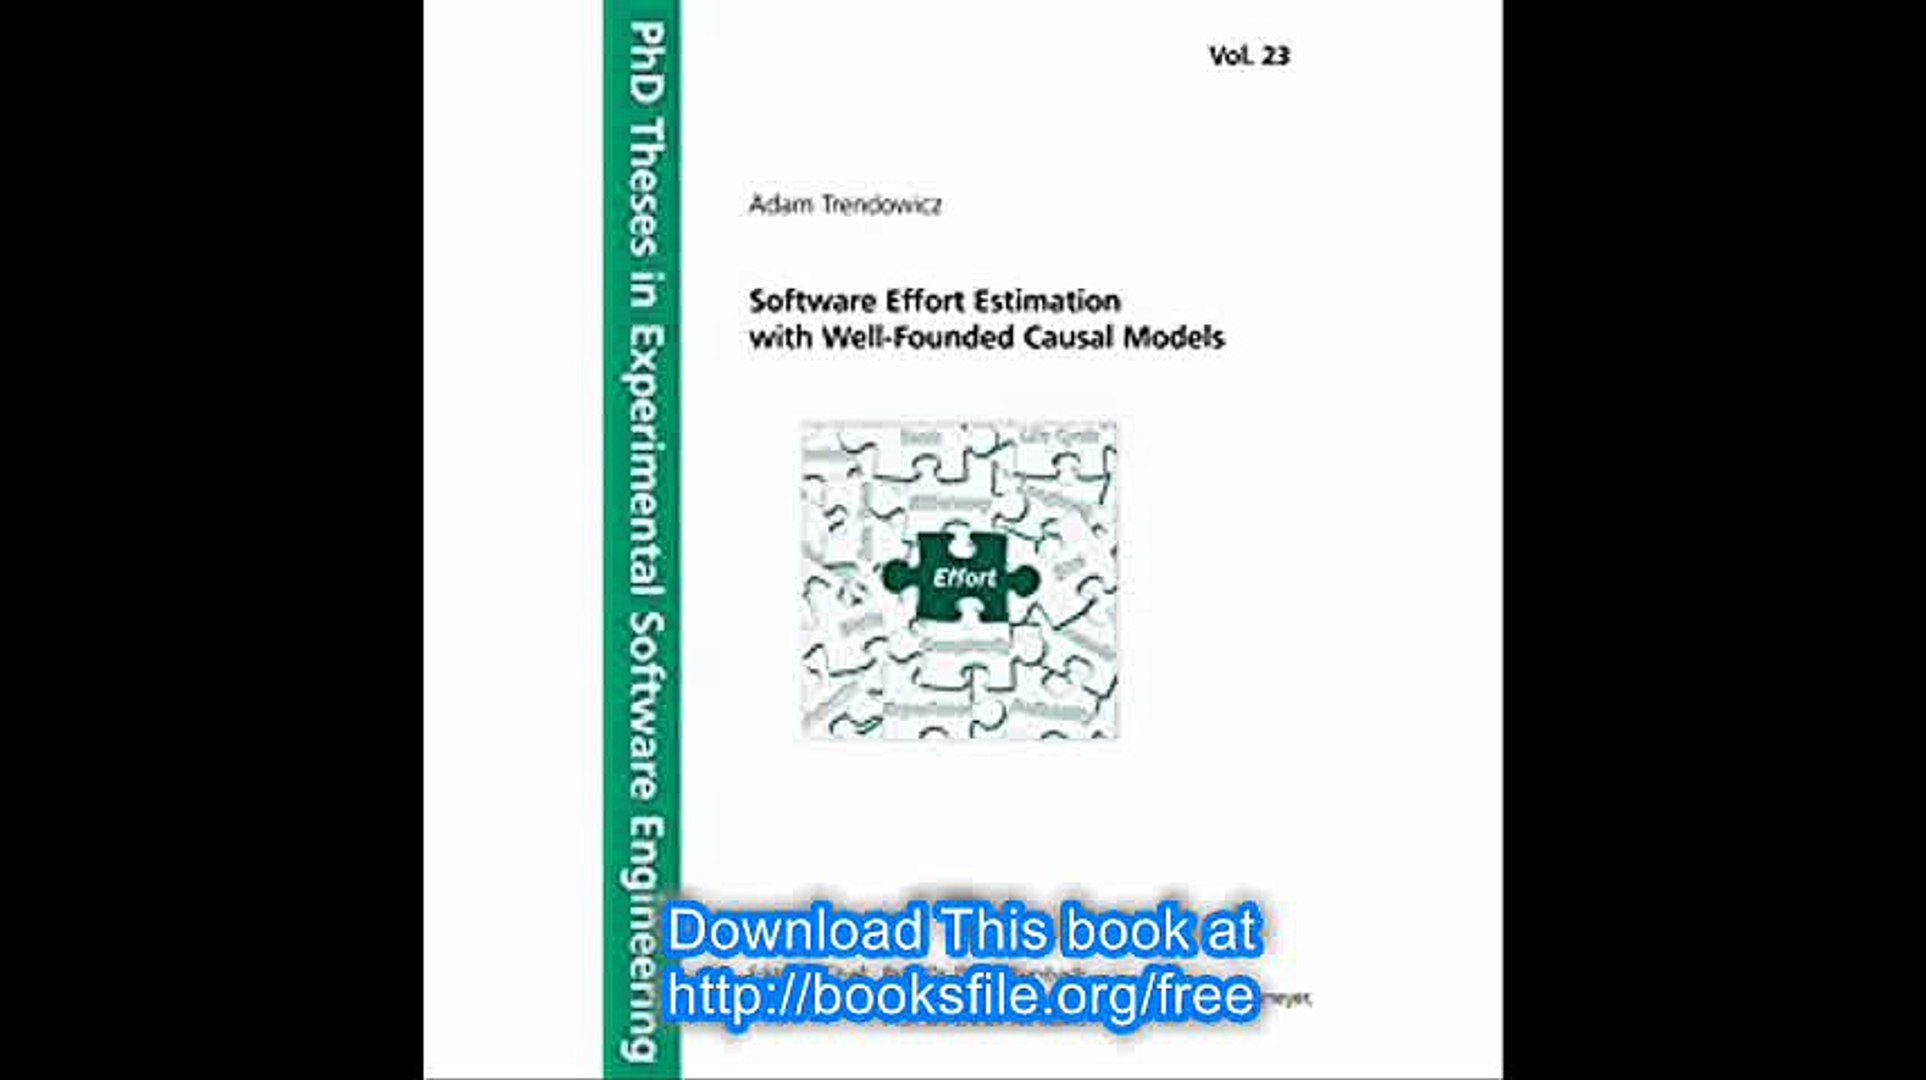 Software Effort Estimation with Well-Founded Causal Models (PhD Theses in Experimental Software Engi